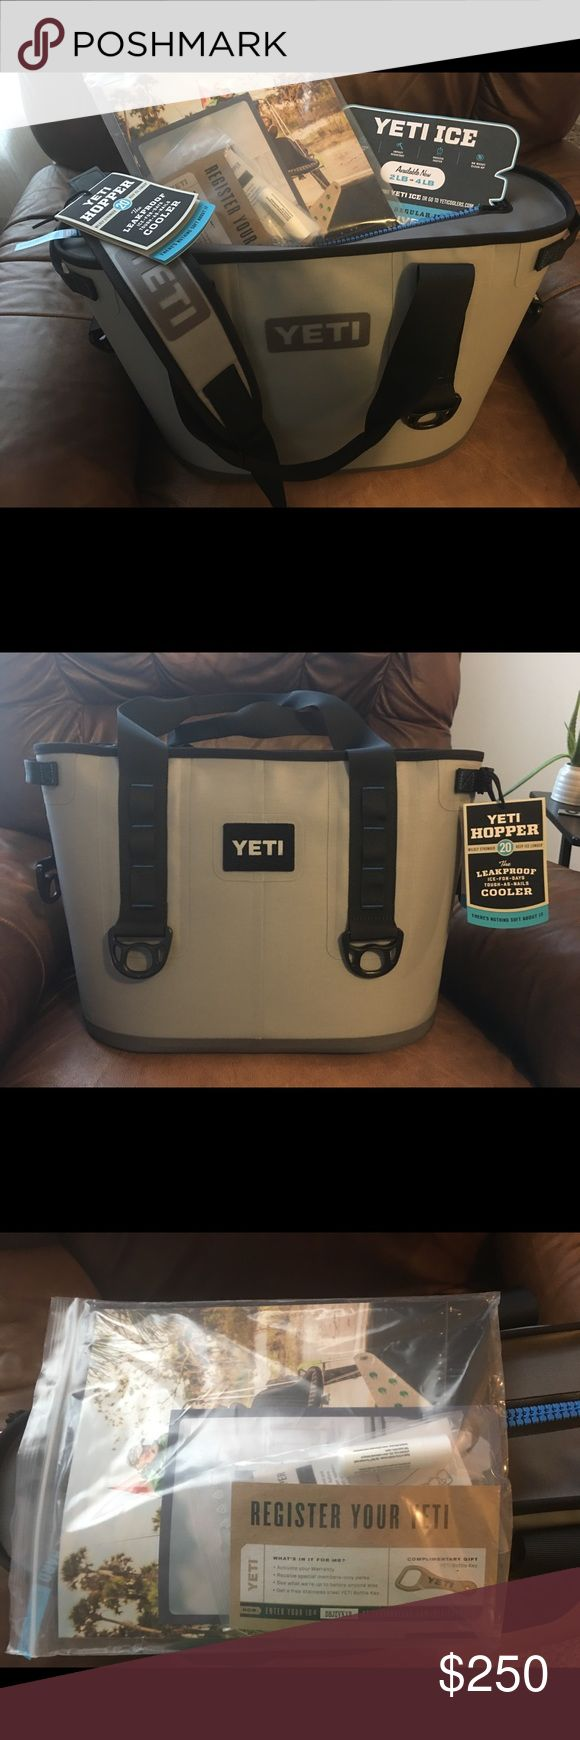 NWT Yeti Cooler NWT, perfect for the summer at the lake, ball games, camping, etc. Has all tags, paper work (including registration papers). It's leak proof as well, very durable!!!! Yeti Hopper20 Yeti Other